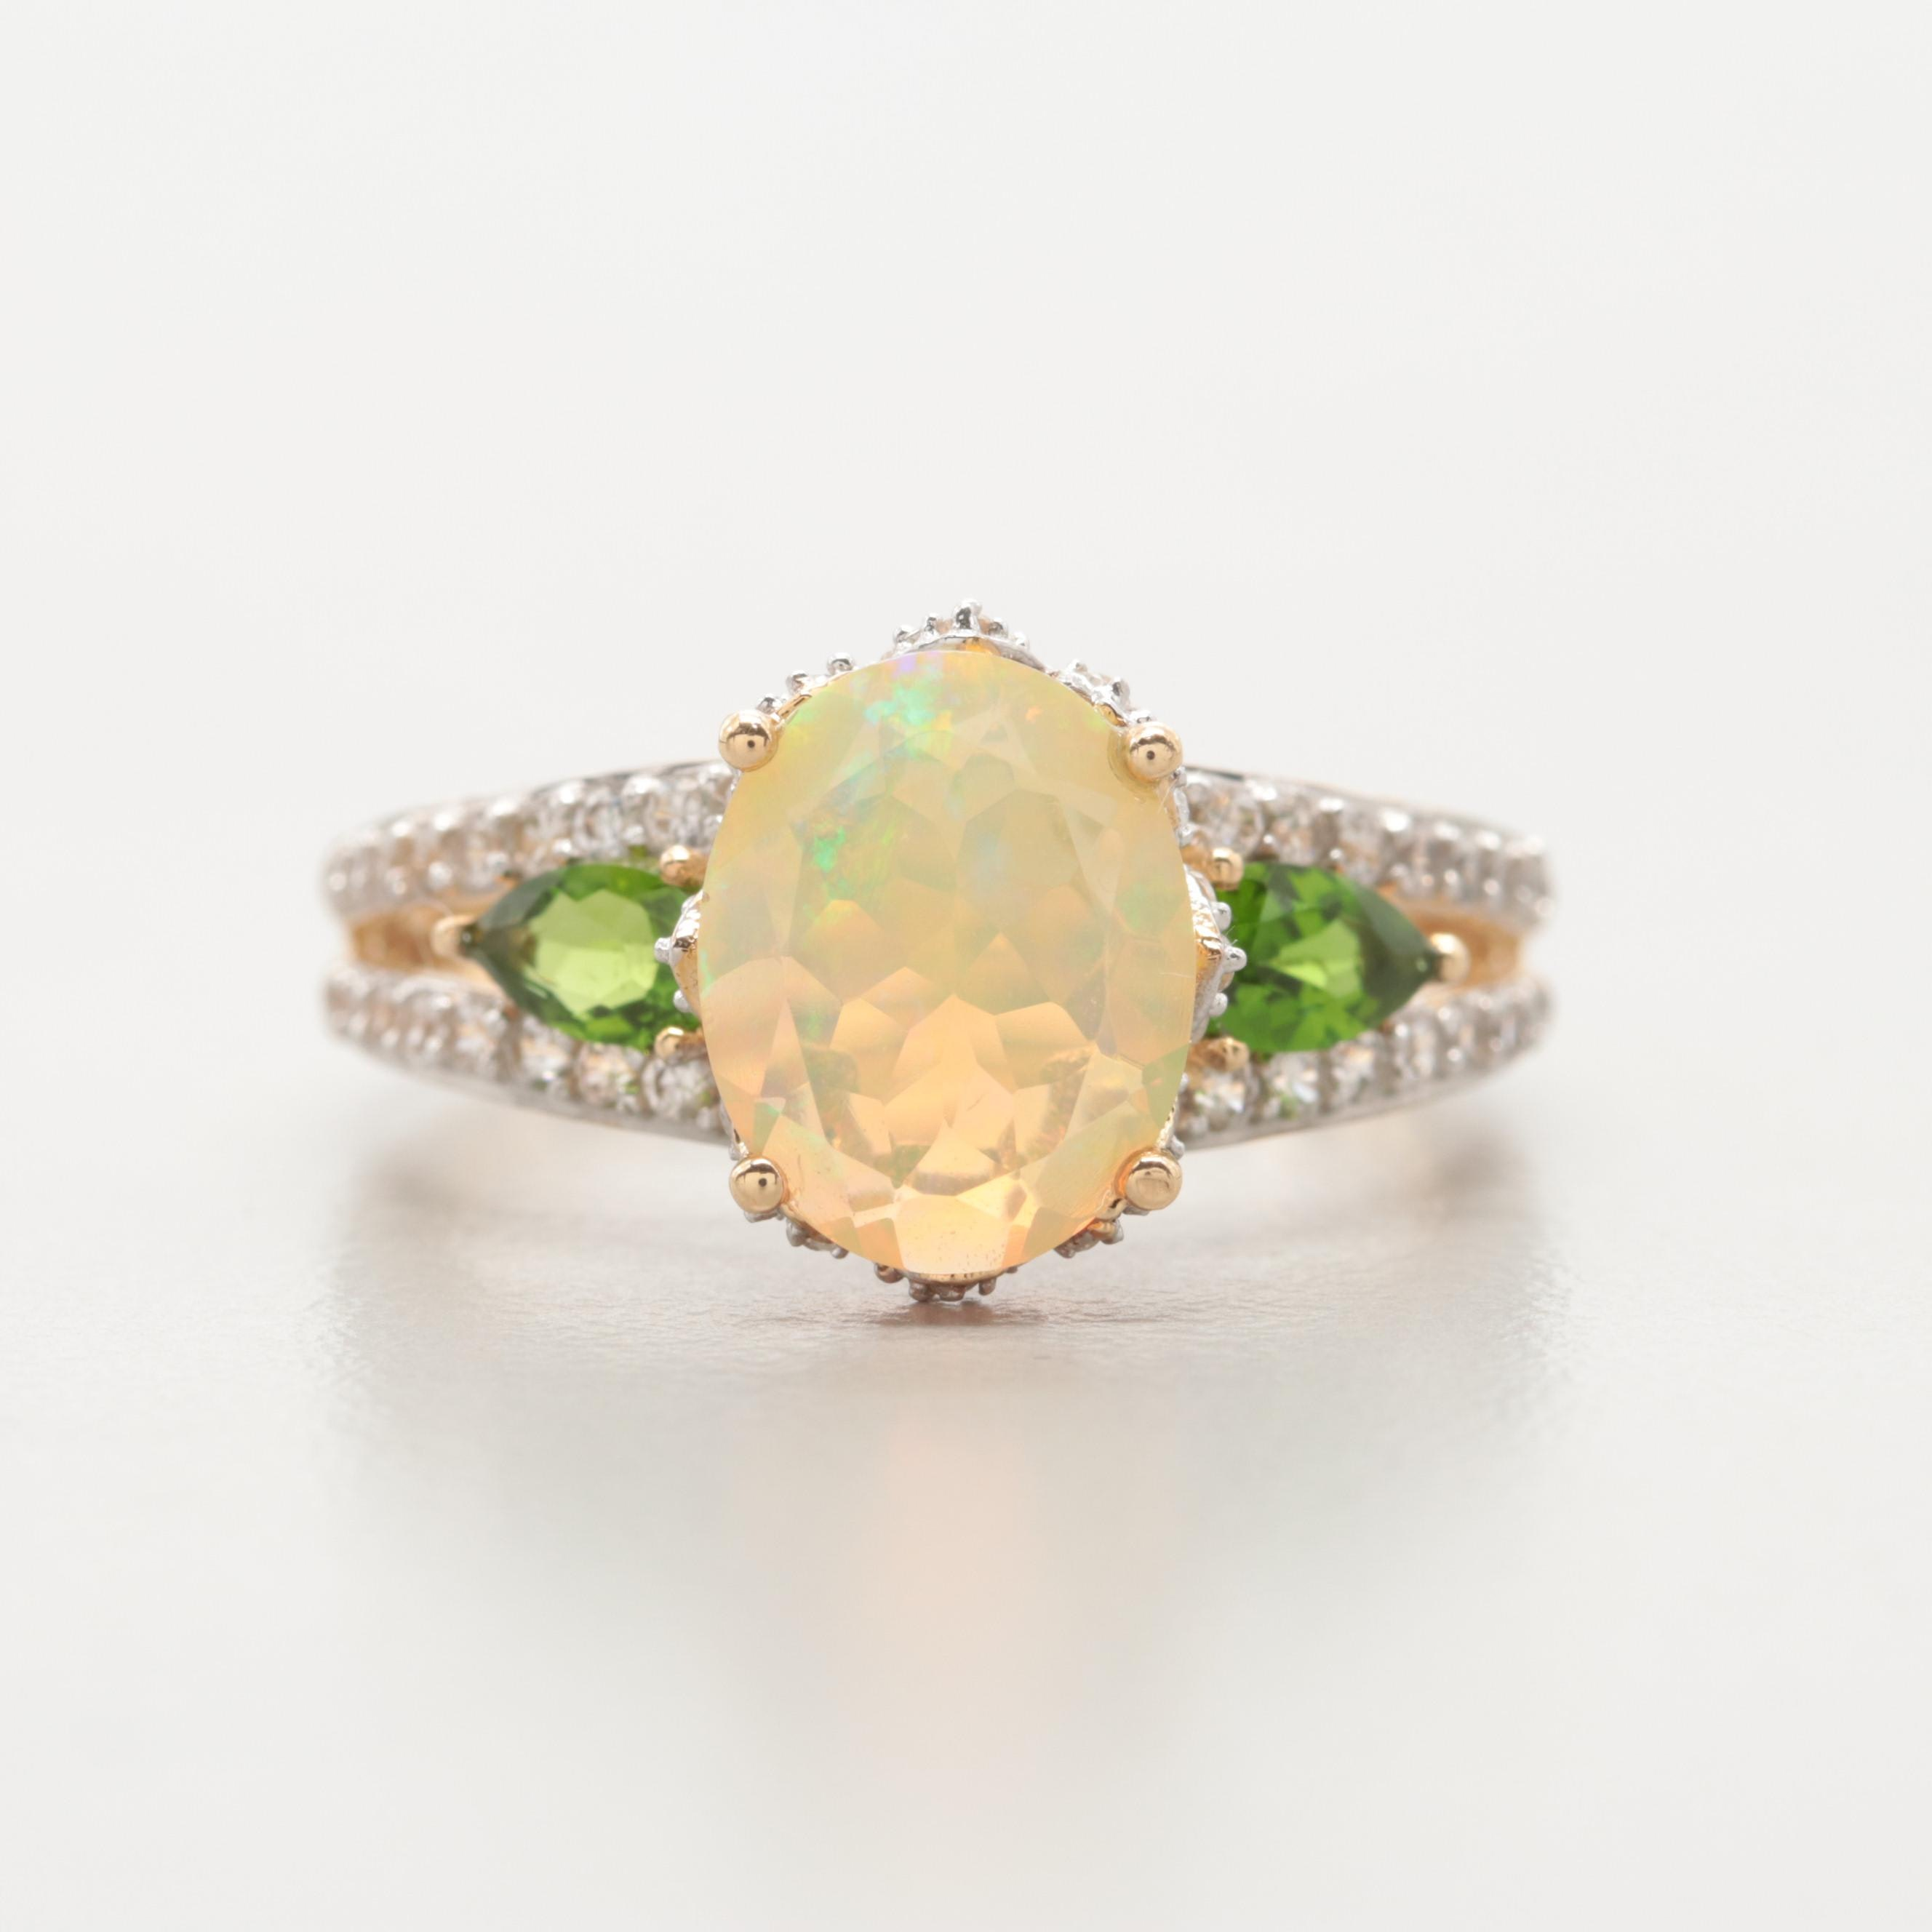 10K Yellow Gold Opal, Chrome Diopside and White Topaz Ring